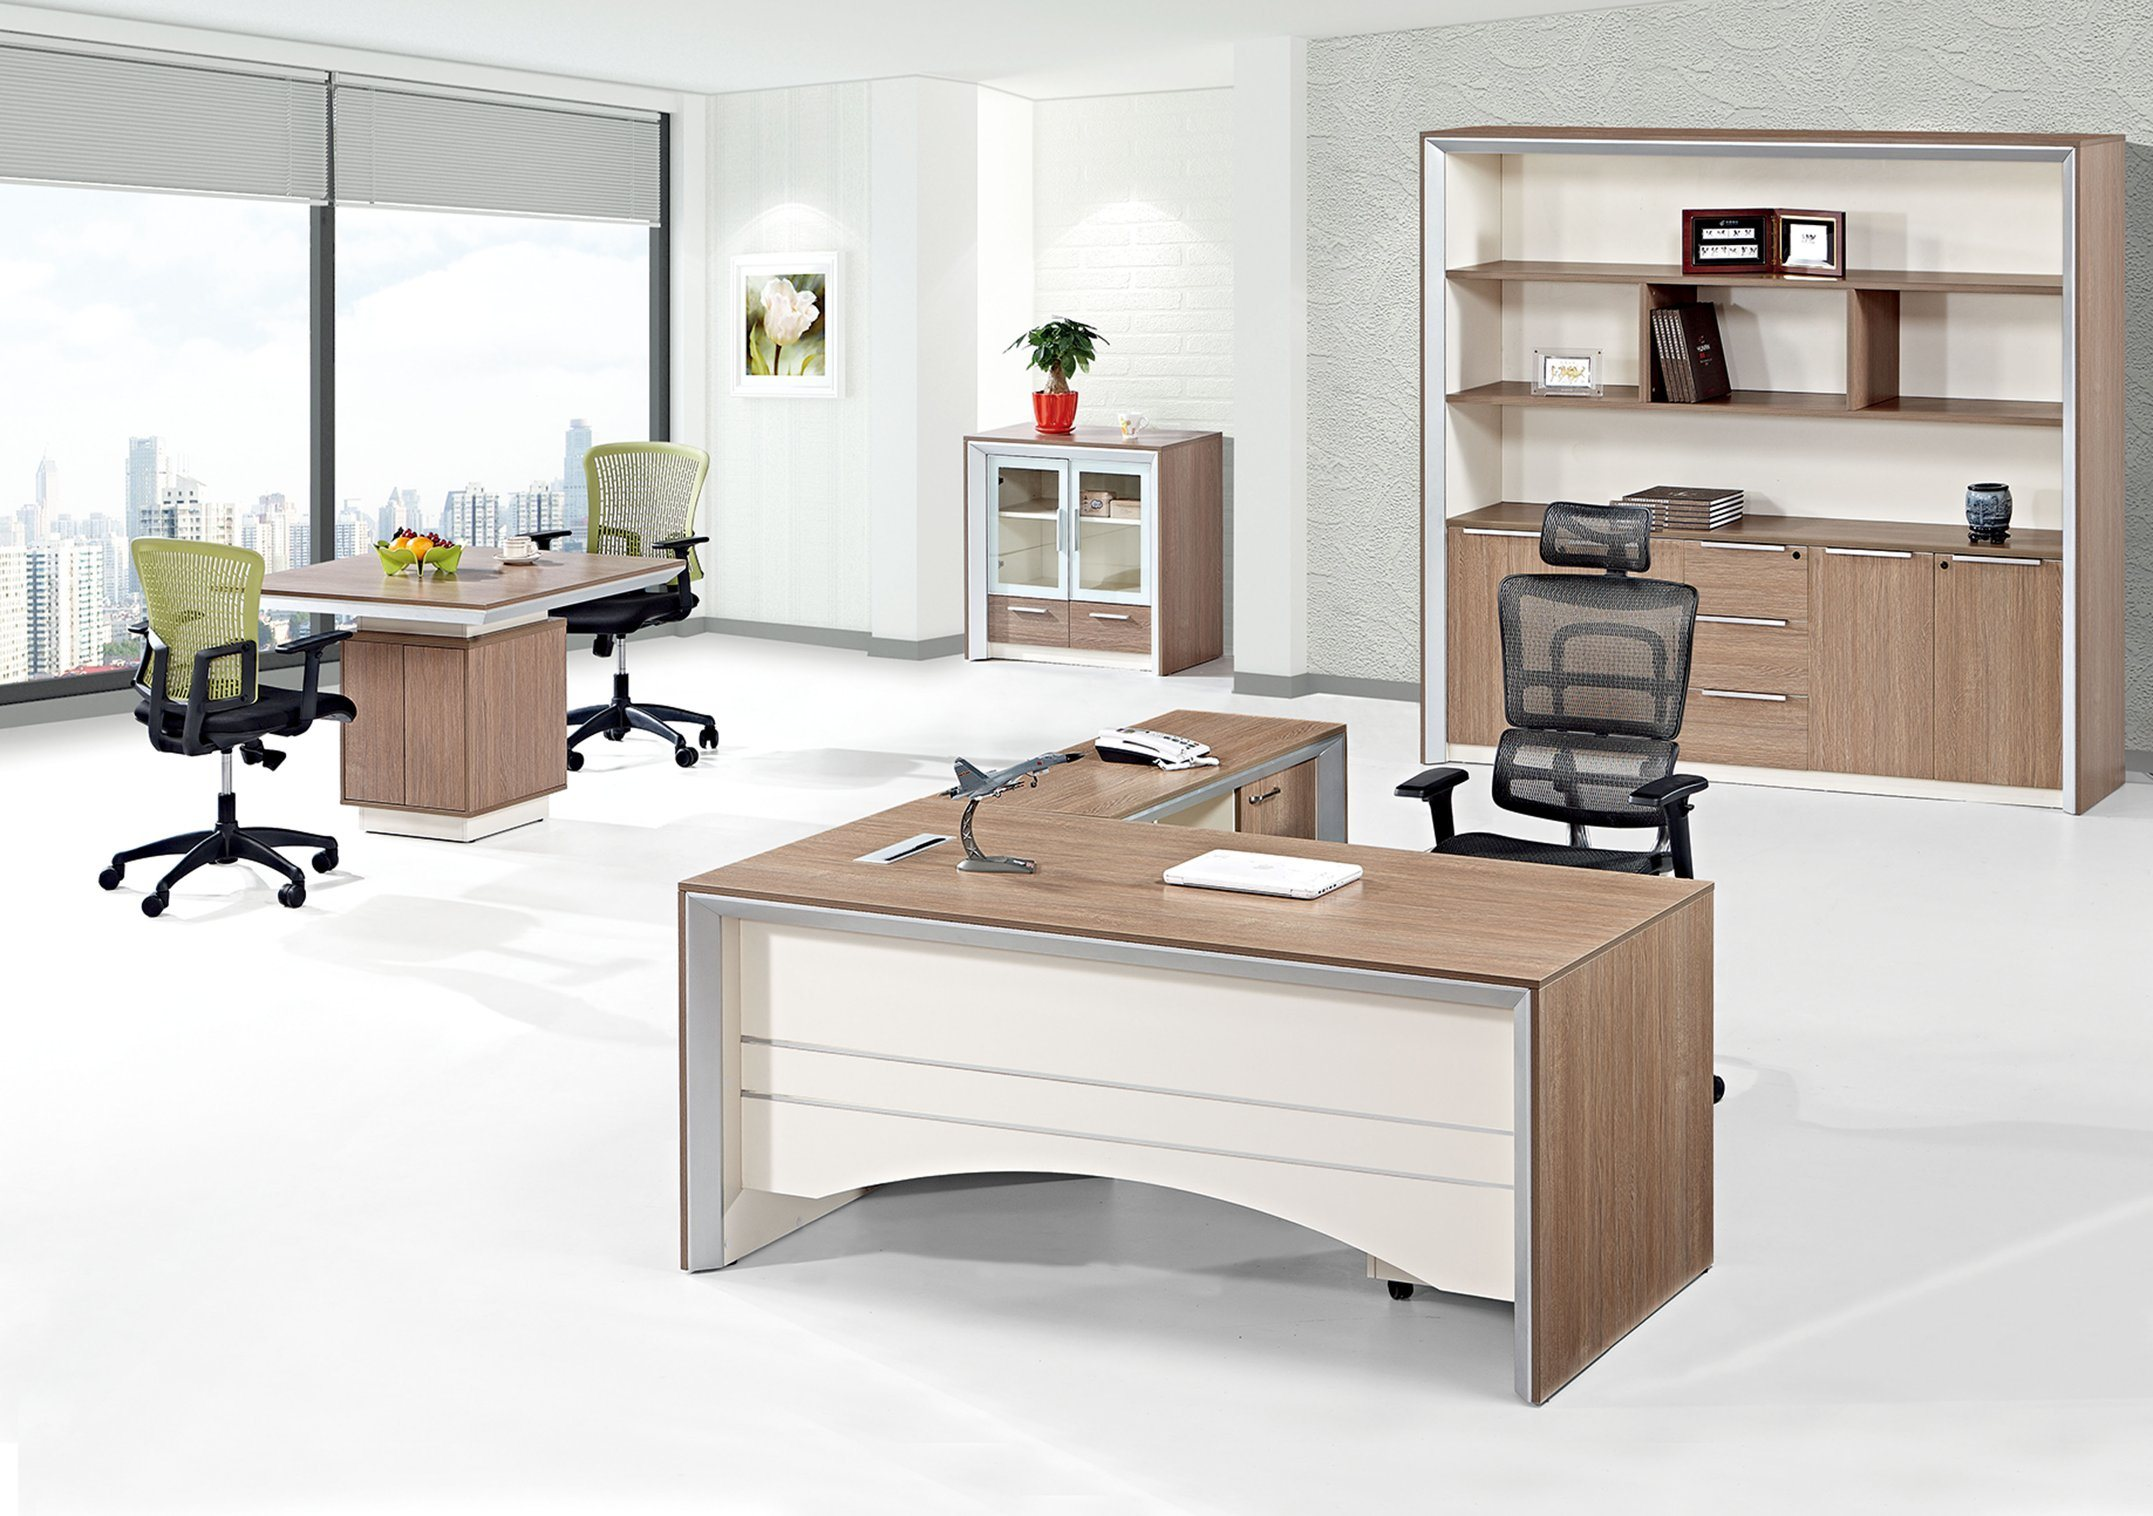 China Modern Aluminium Alloy Executive Desk Melamine Manager Table For Project Office Computer